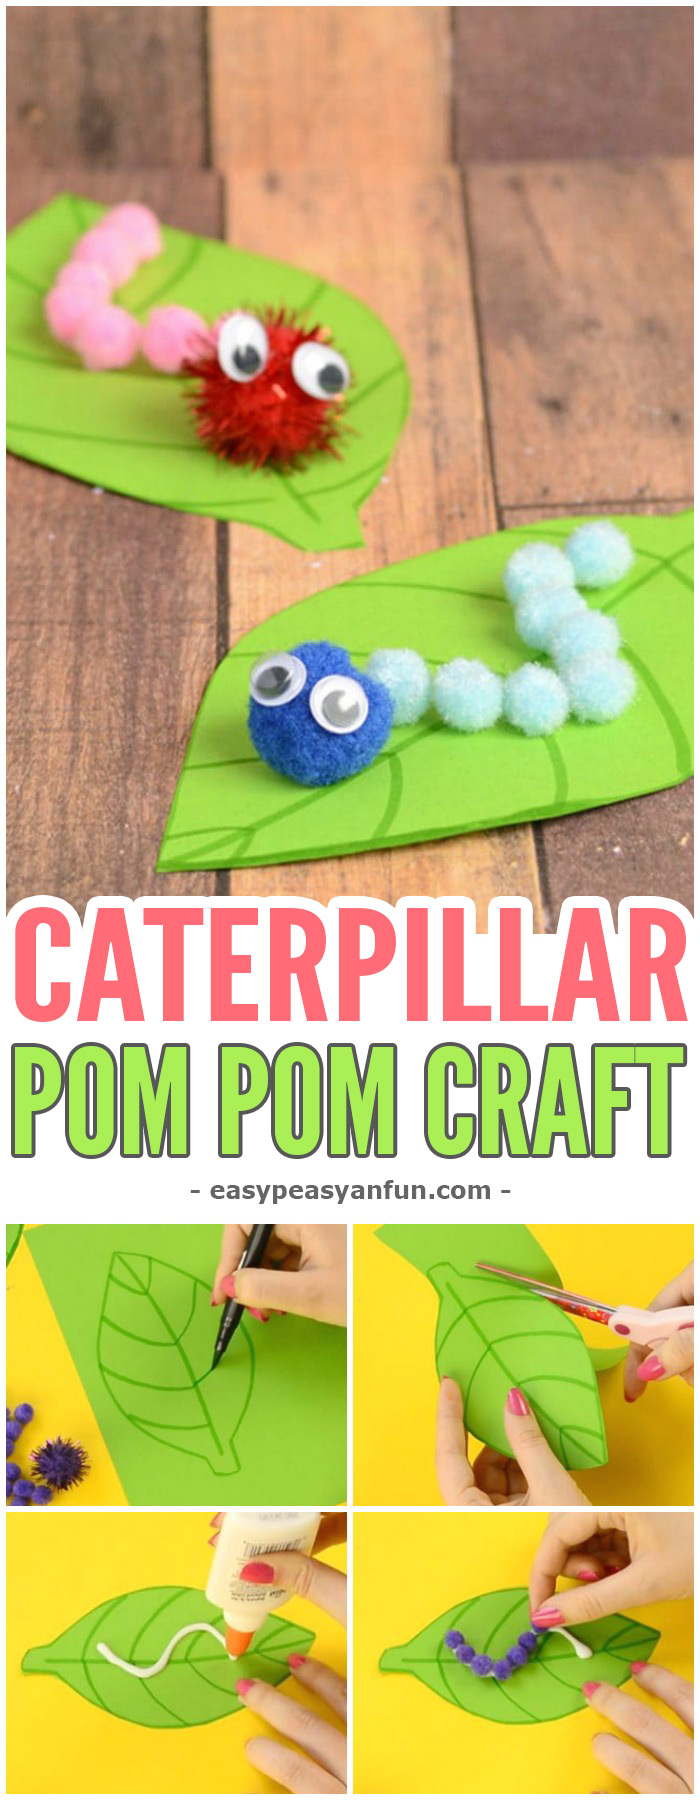 Adorable Caterpillar Pom Pom Craft For Kids #craftsforkids #Springcrafts #activitiesforkids